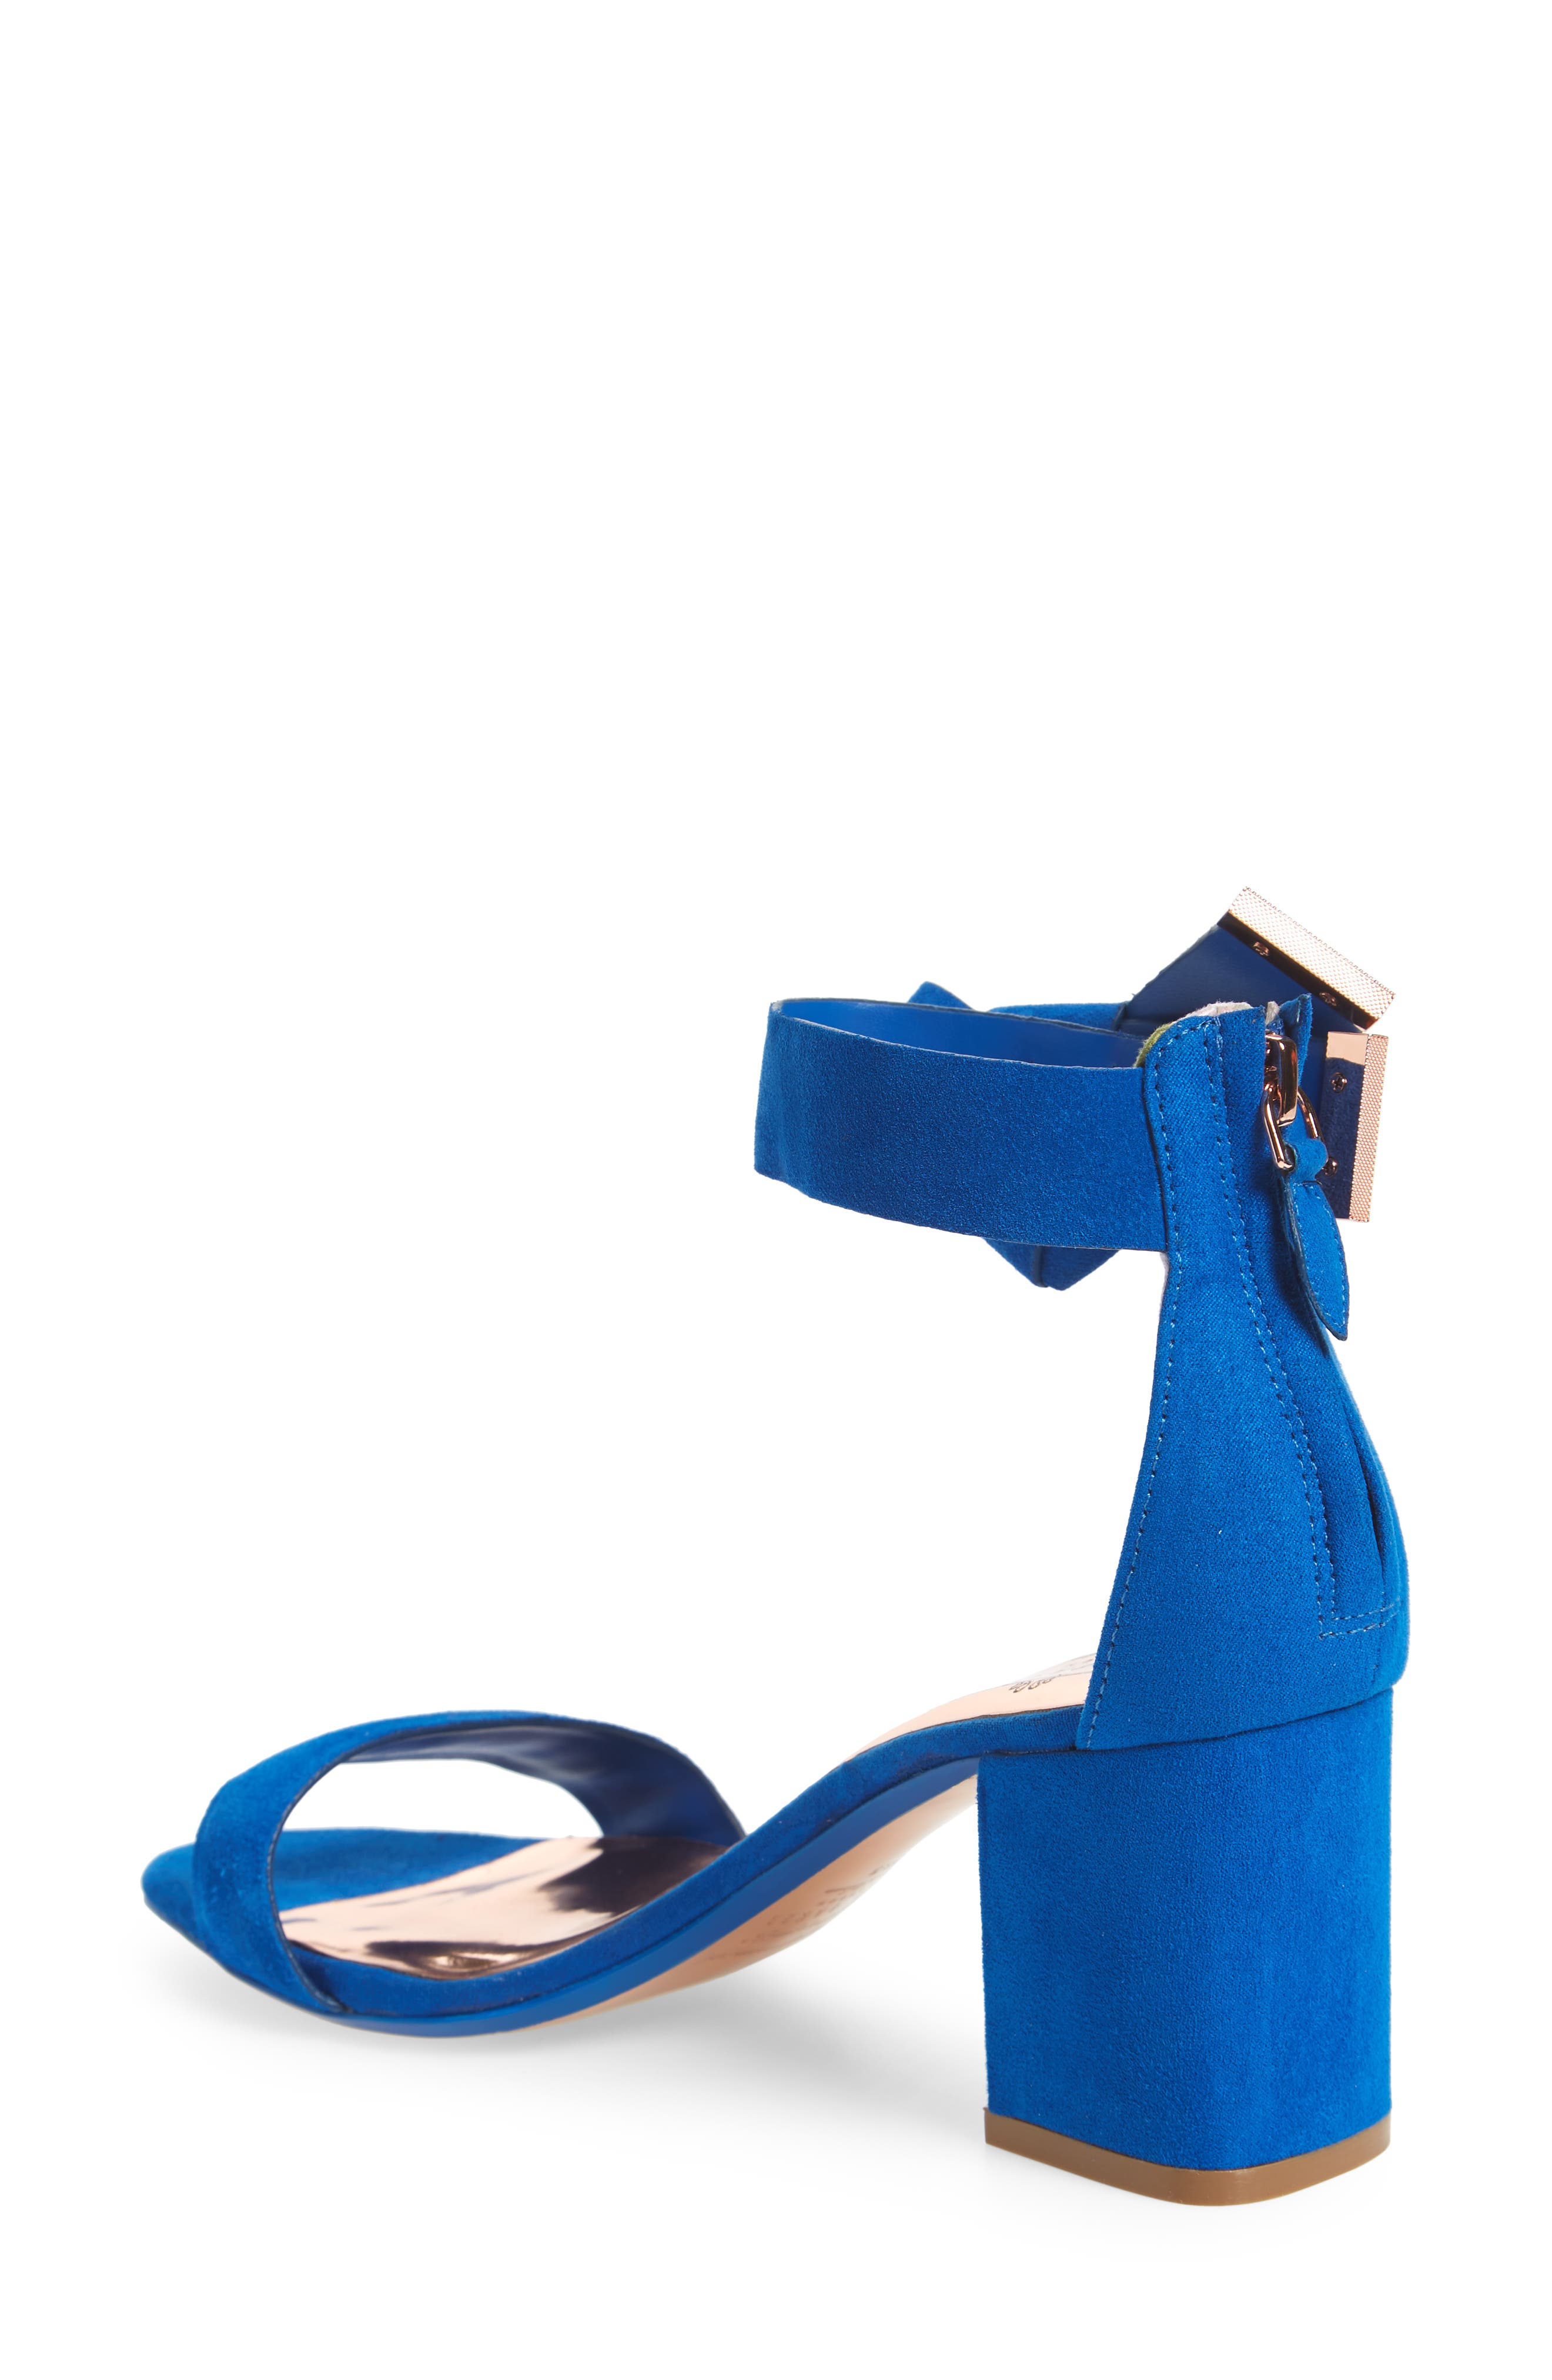 Kerrias Block Heel Sandal,                             Alternate thumbnail 2, color,                             402